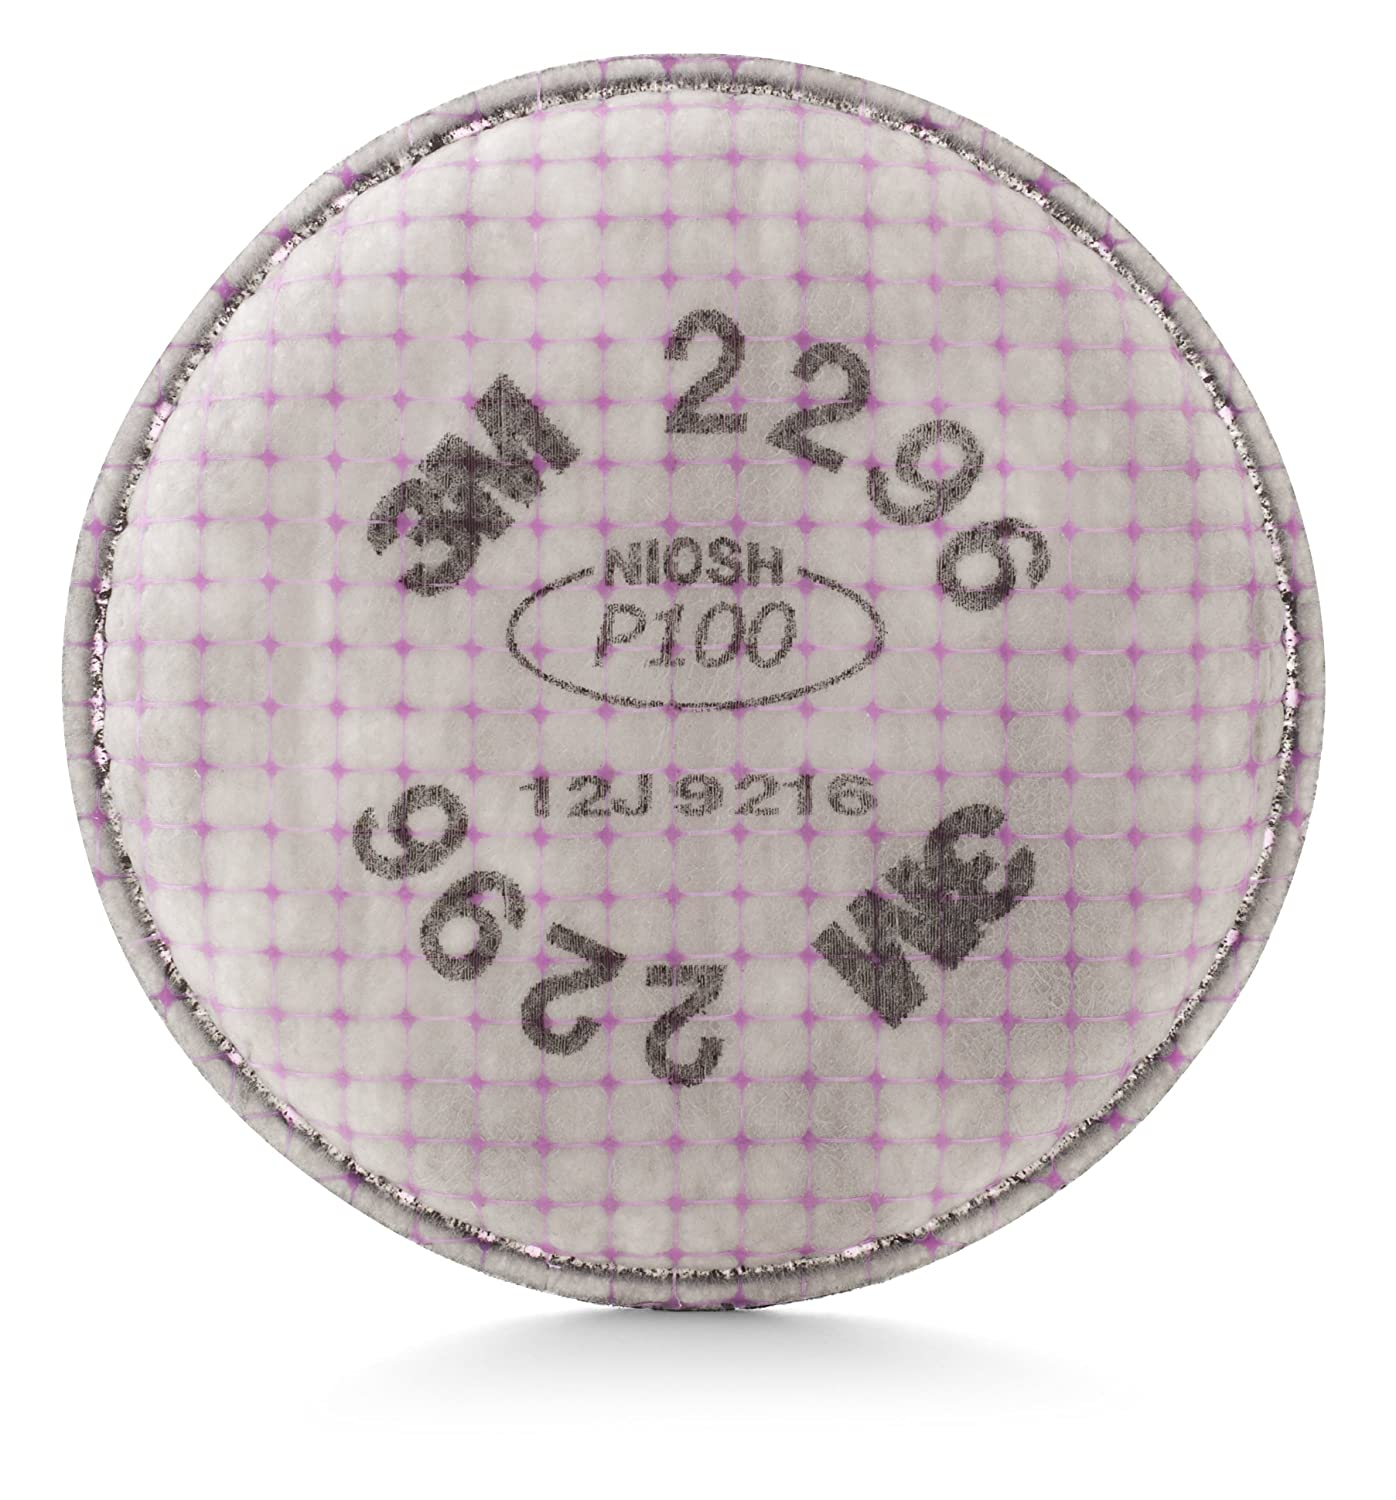 3M Advanced Particulate Filter 2296, P100, with Nuisance Level Acid Gas Relief